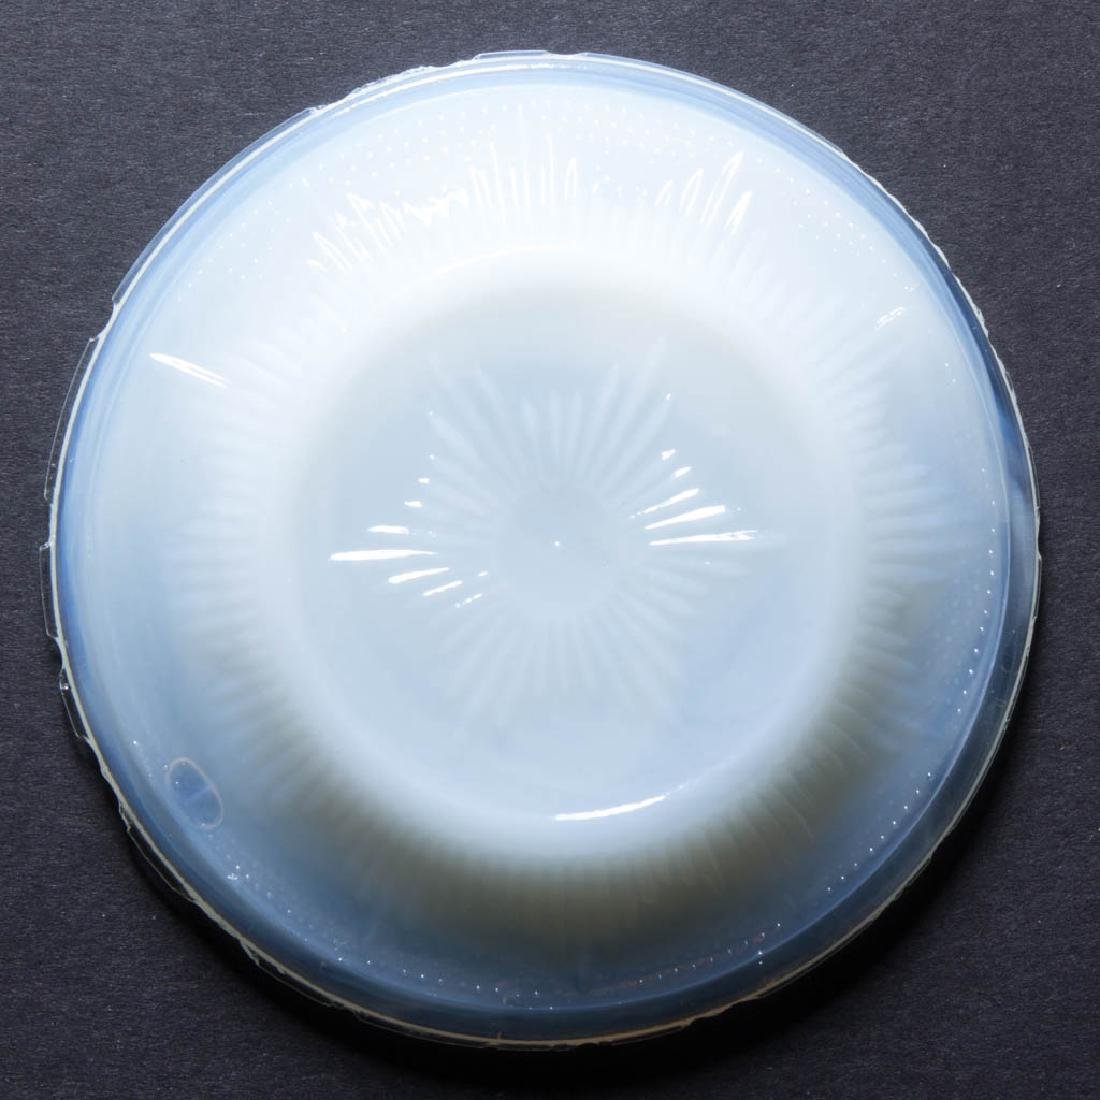 LEE/ROSE NO. 396 CUP PLATE - 2